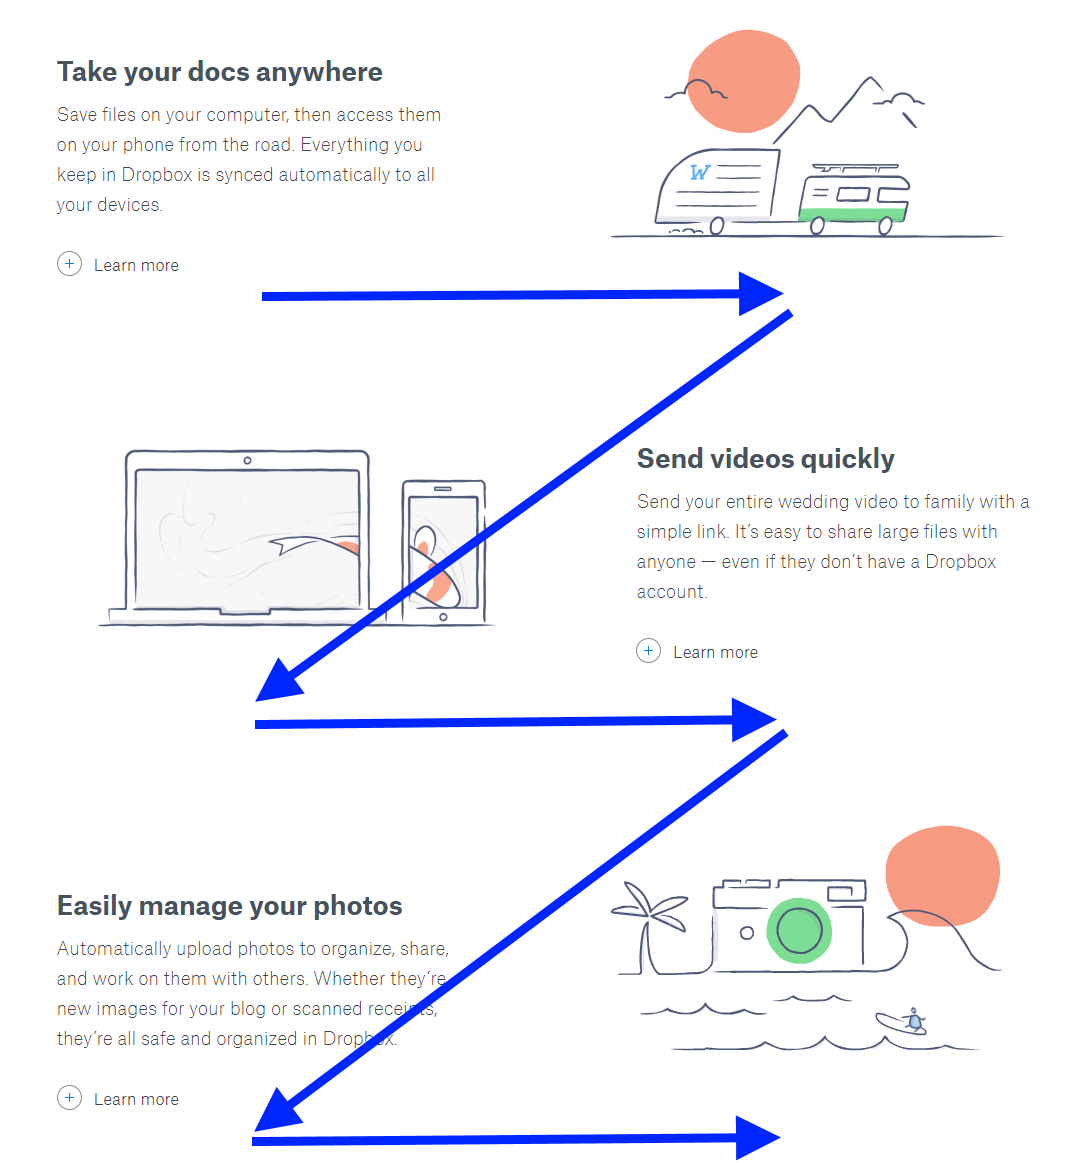 Z Shaped Pattern For Reading Web Content Ux Planet Simple Human Eye Diagram How Our Eyes Work In This Layout Learn More Buttons Play A Role Of Secondary Call To Action That Help Readers Go The Next Relevant Page Without Needing Read